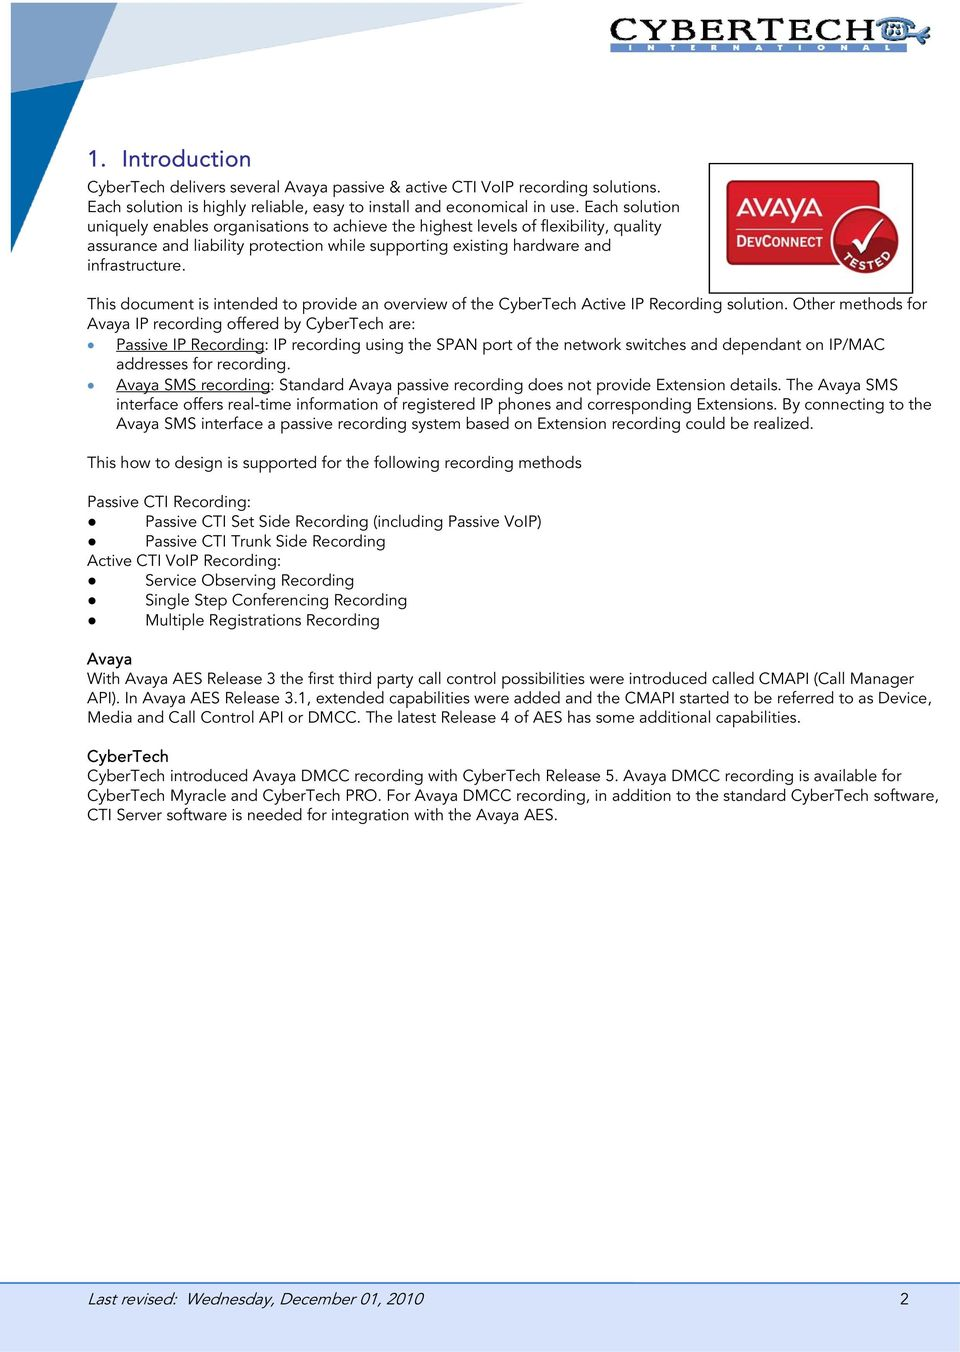 This document is intended to provide an overview of the CyberTech Active IP Recording solution.